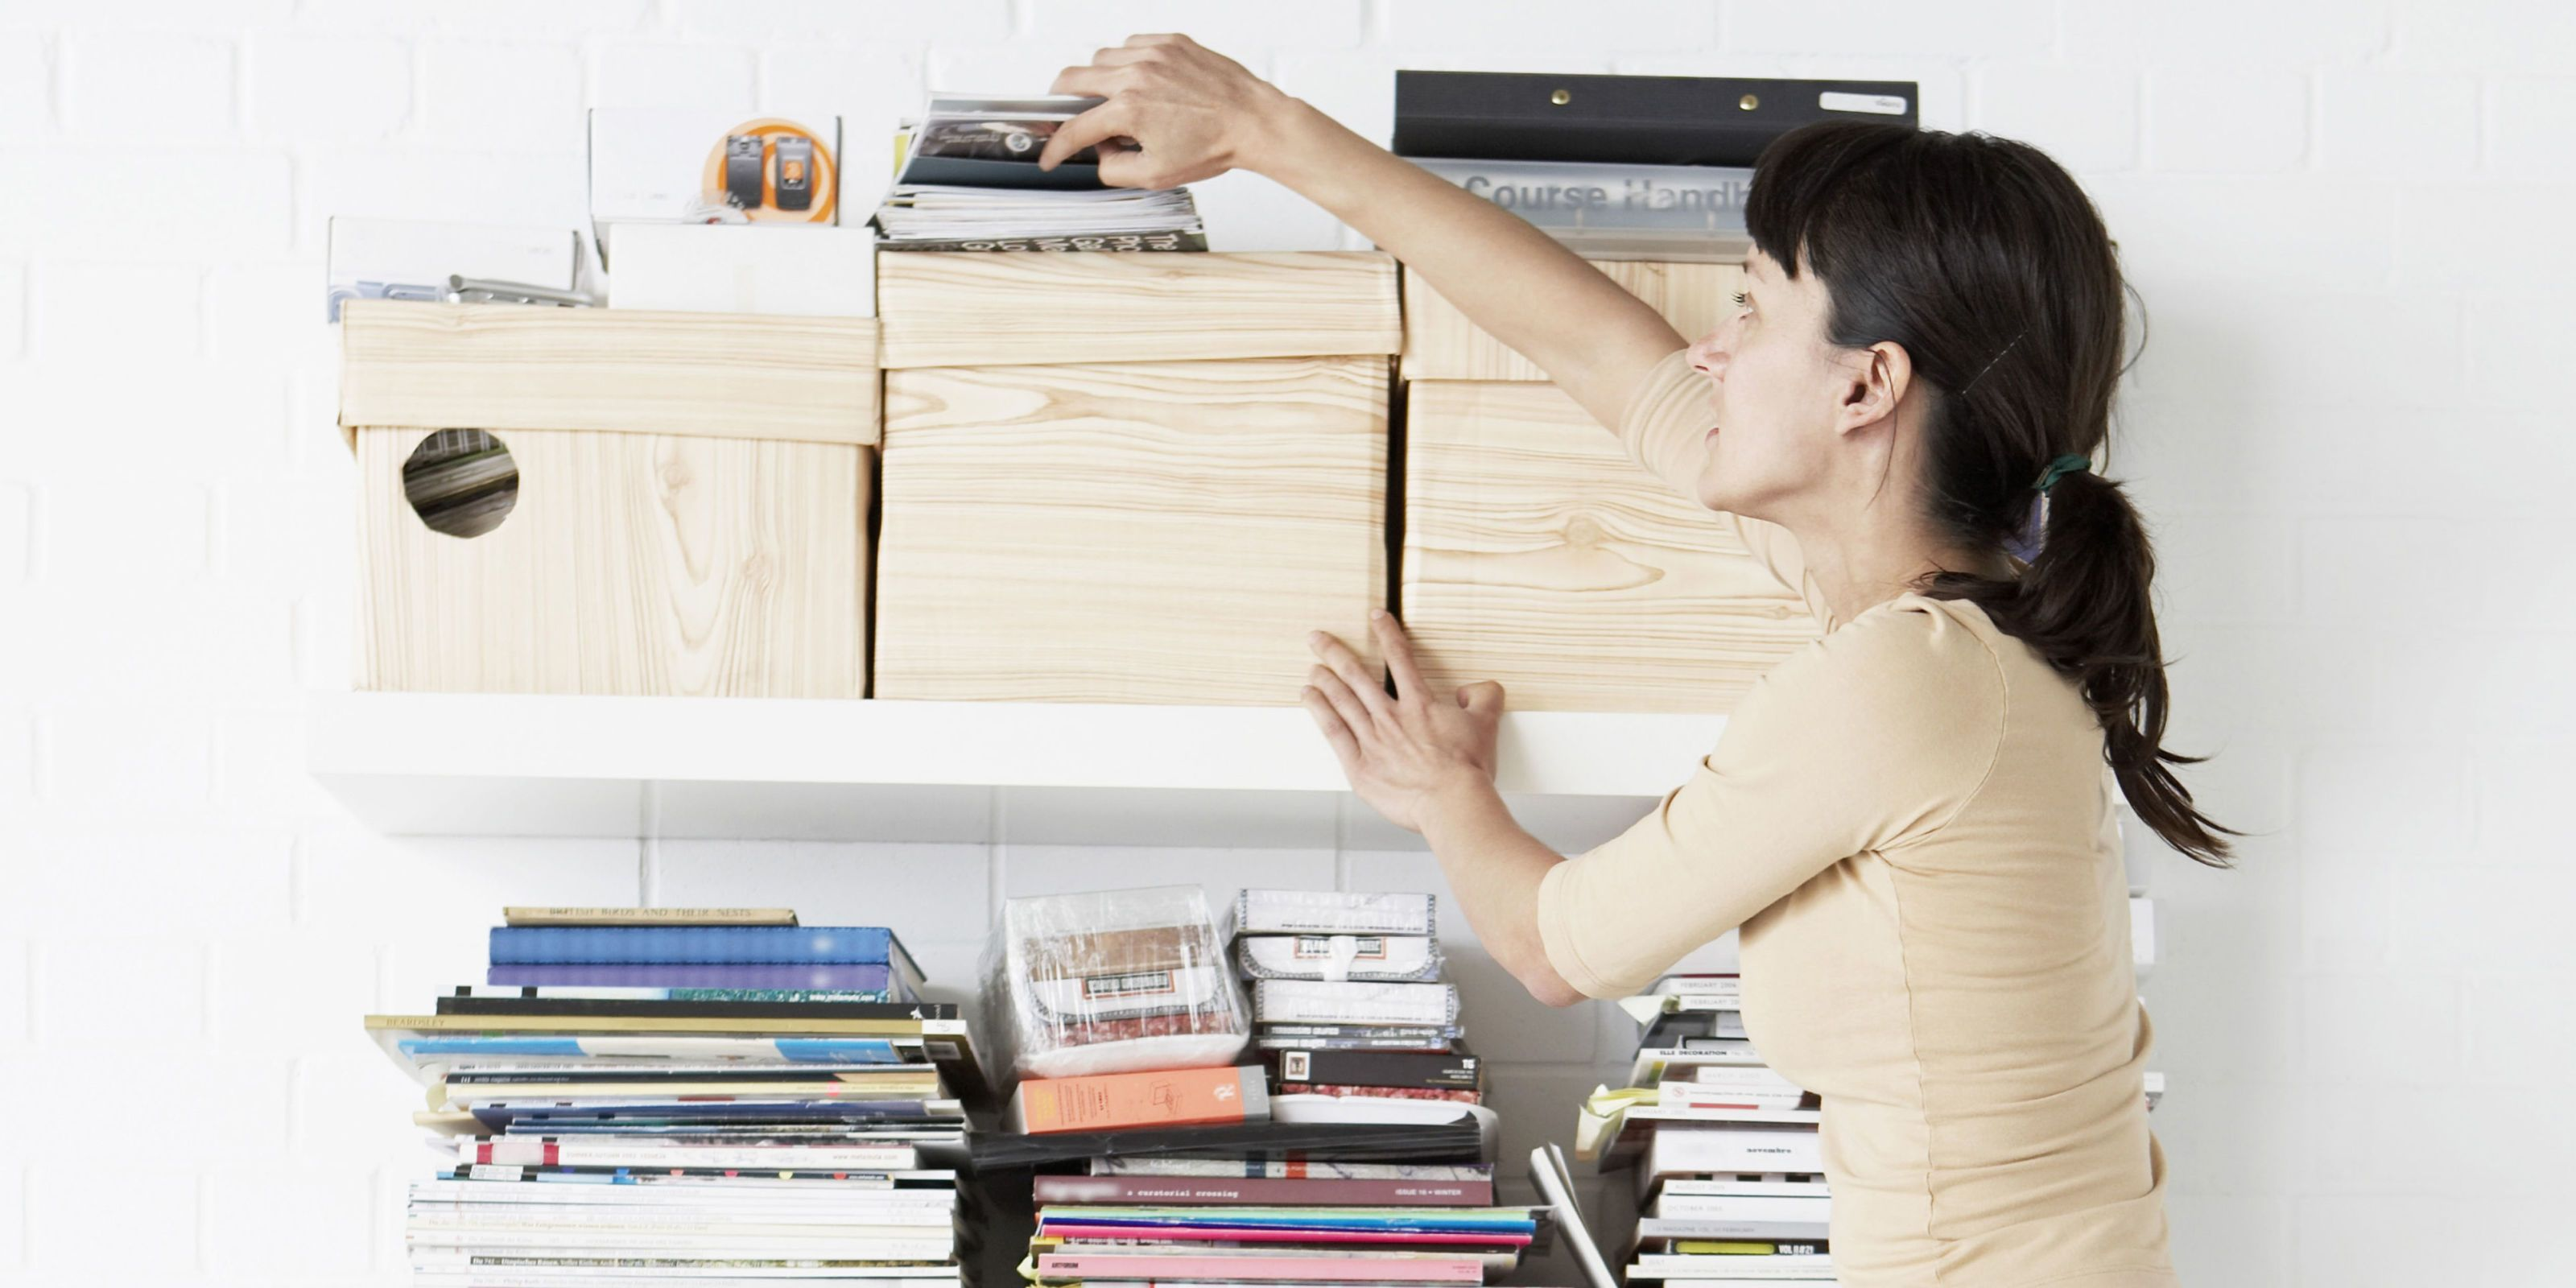 12 Best Professional Organizing Tips How To Organize Your Life And Home